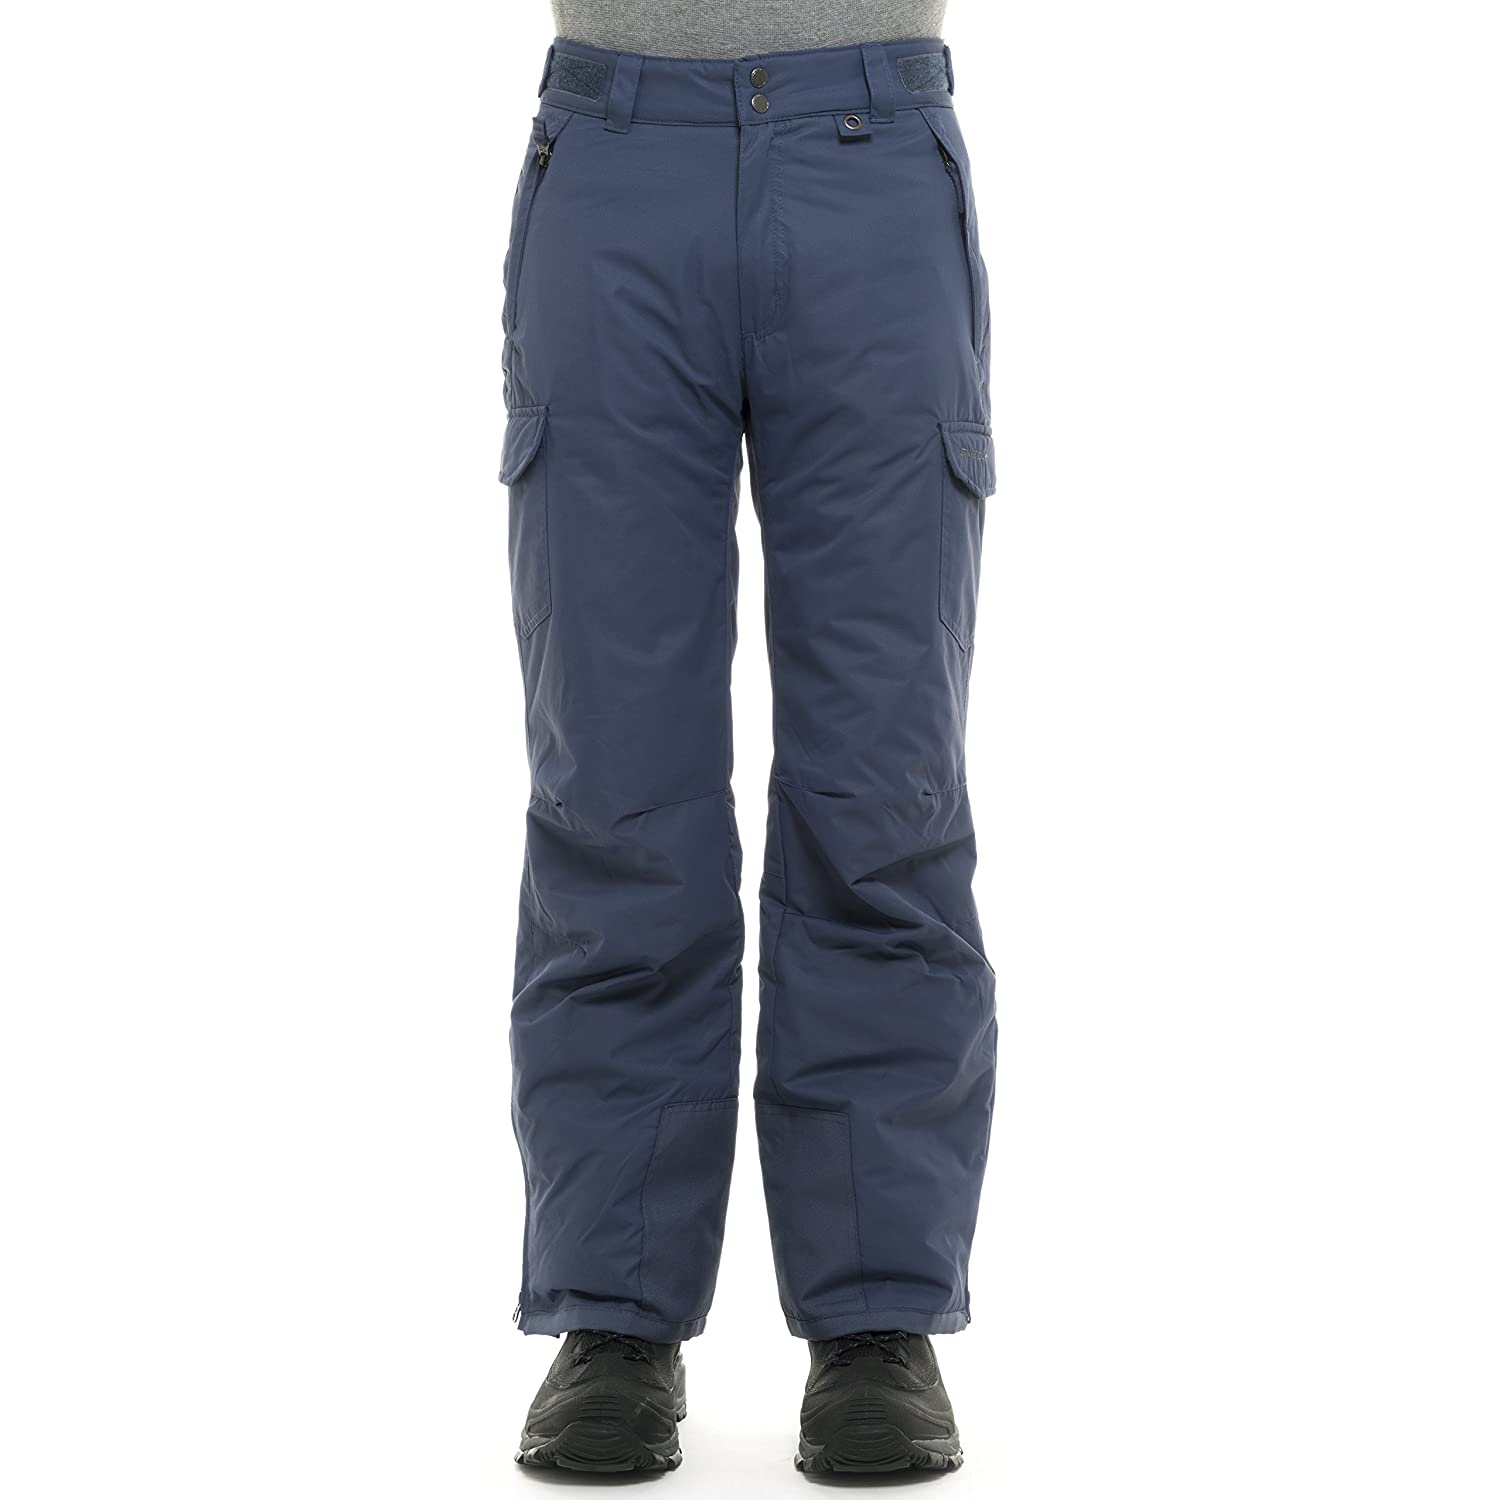 Arctix SKI Gear by Men's 1960 Snow Sports Thermatech Insulated Nylon Waterproof Pant Shady Blue